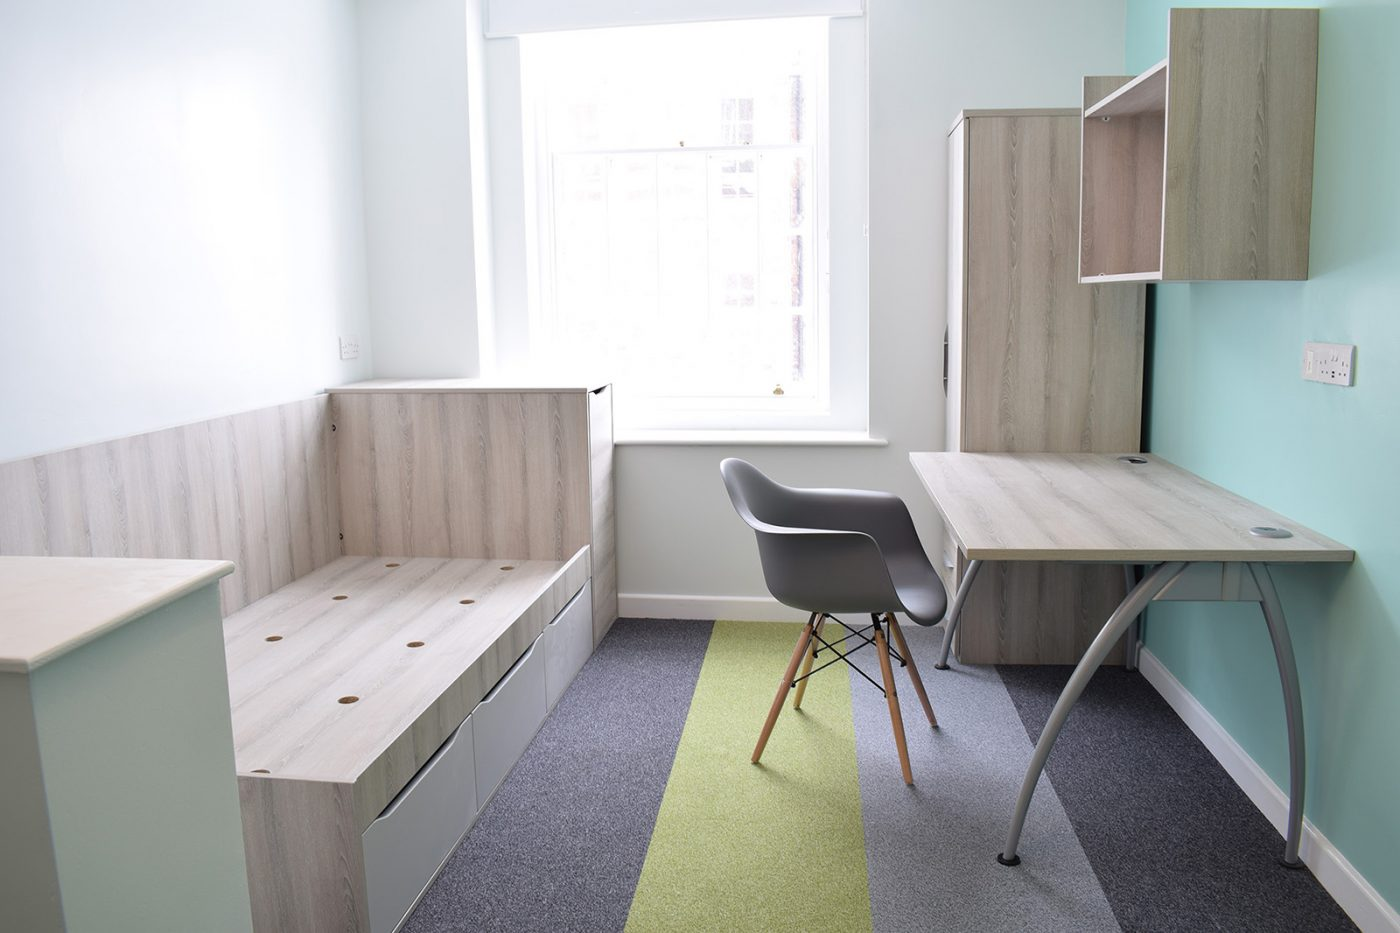 student accommodation furniture, bedroom furniture, student bedroom